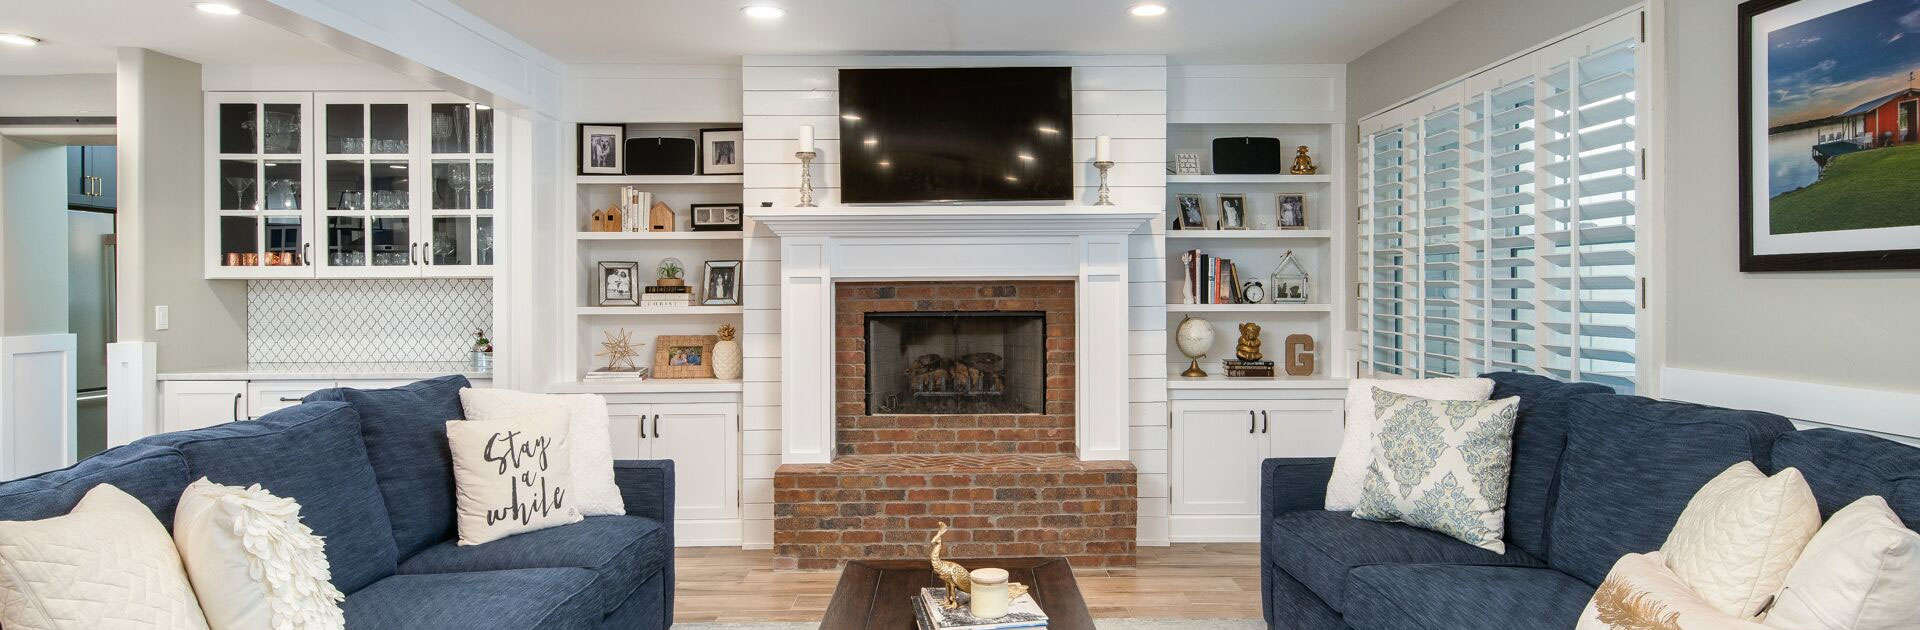 home living room with two couches, a fireplace, and built-in bookshelves